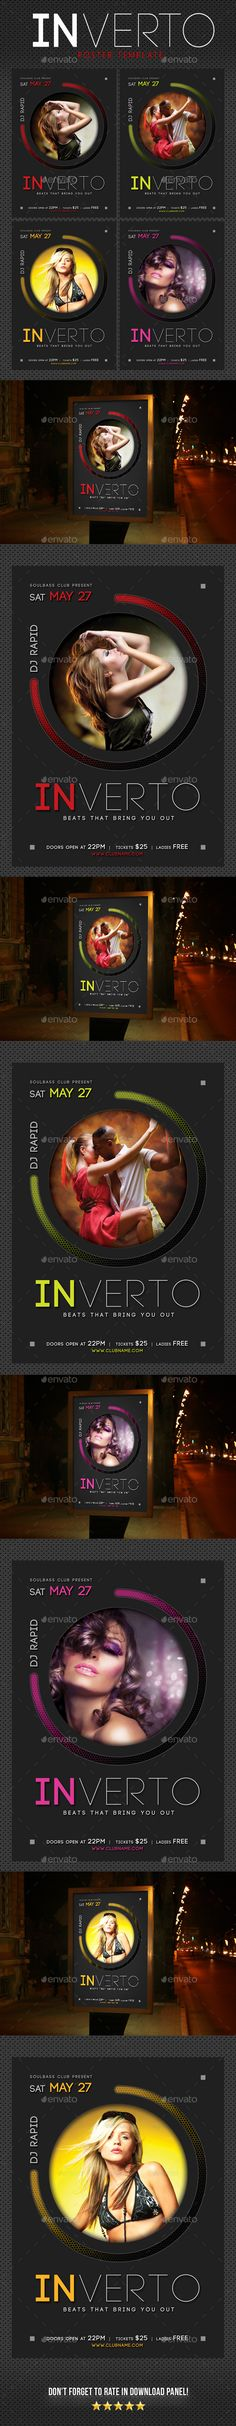 Inverto Music Poster 3 - Signage Print Templates